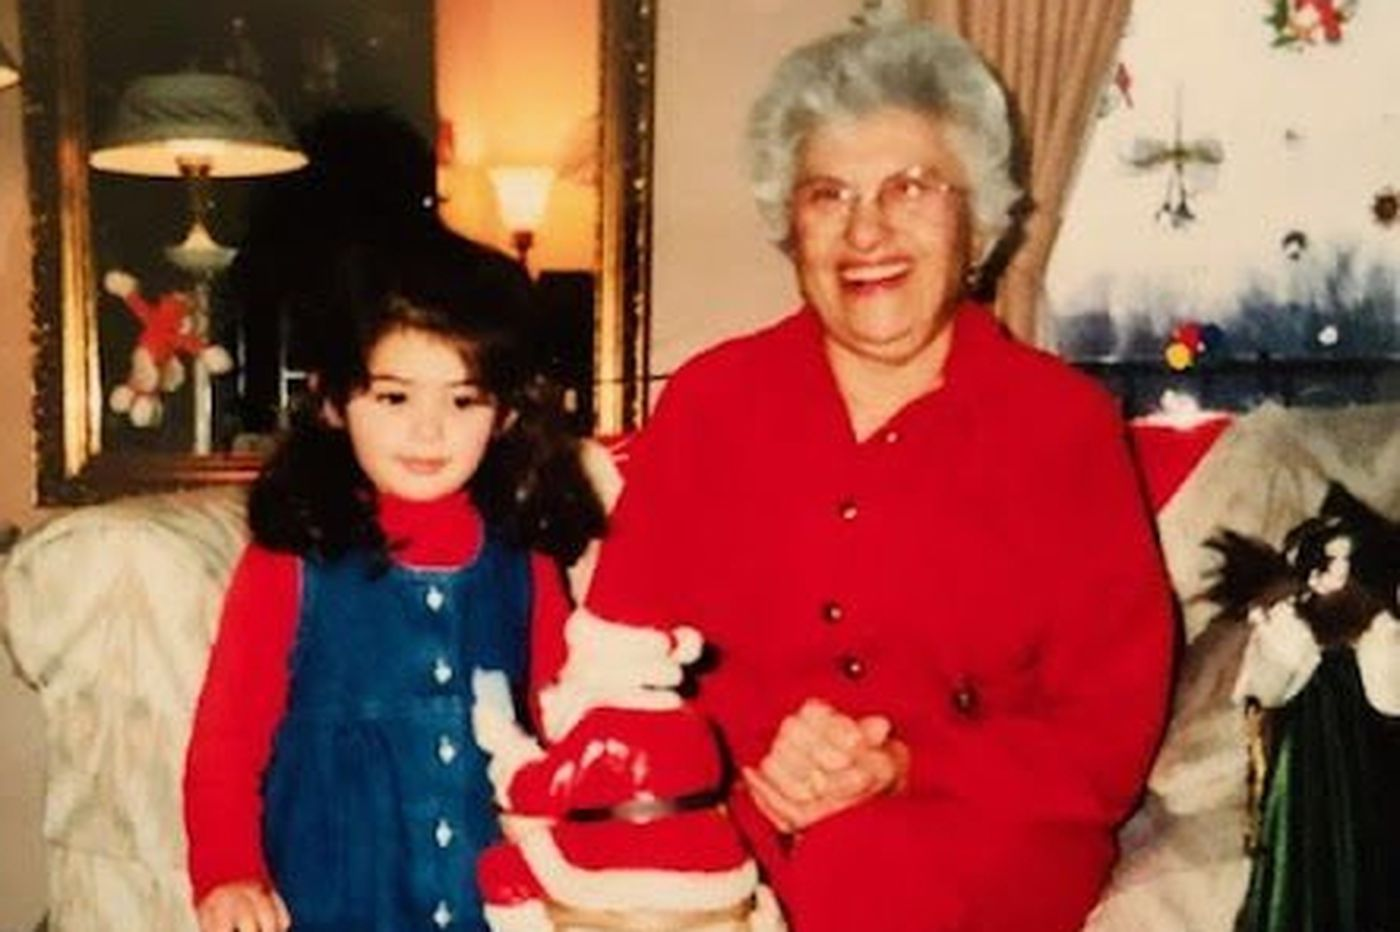 Sarah Nader, 107, served in World War II and lived a life full of laughter